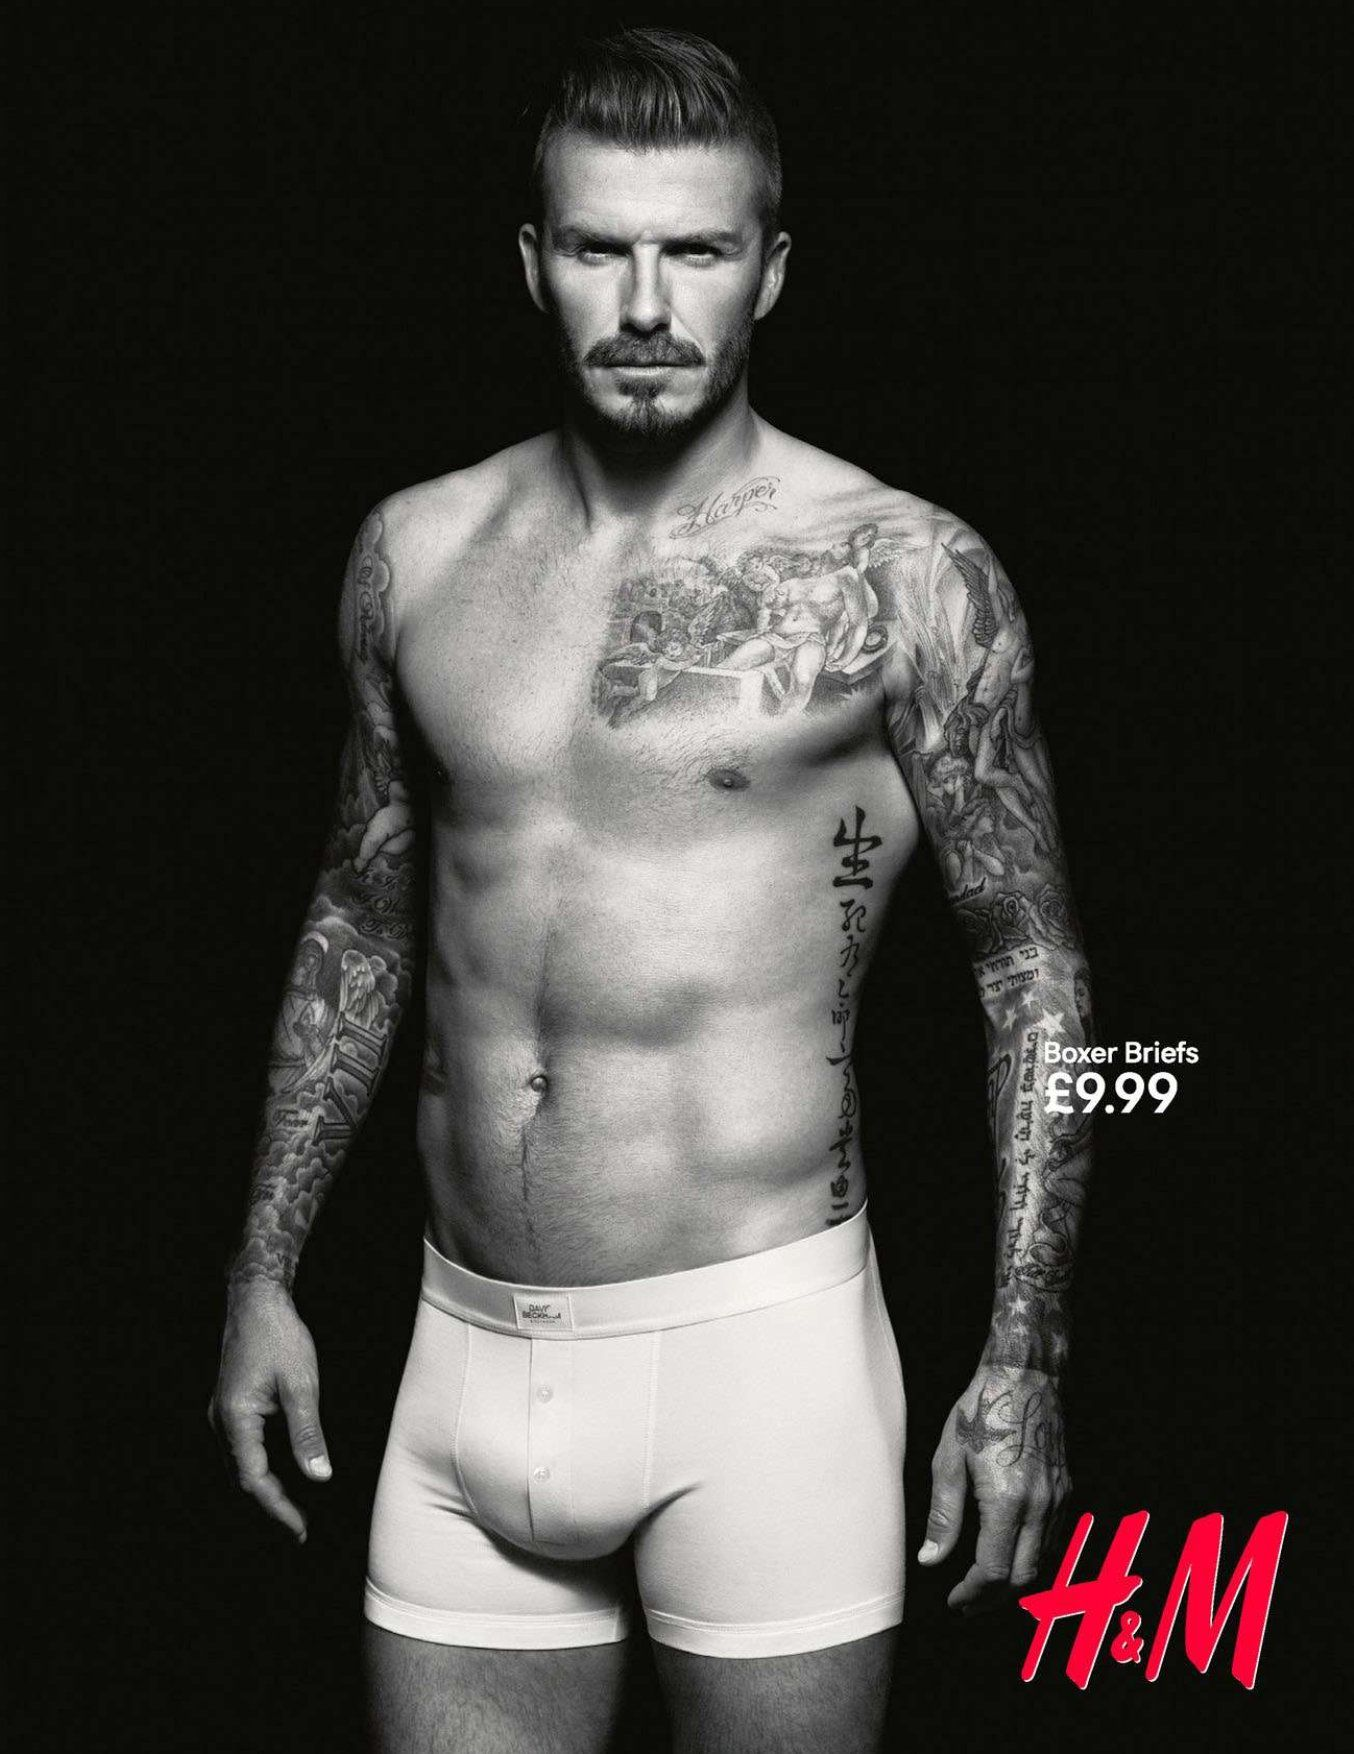 David Beckham David Beckham: H&M Underwear - Second collection - 2012